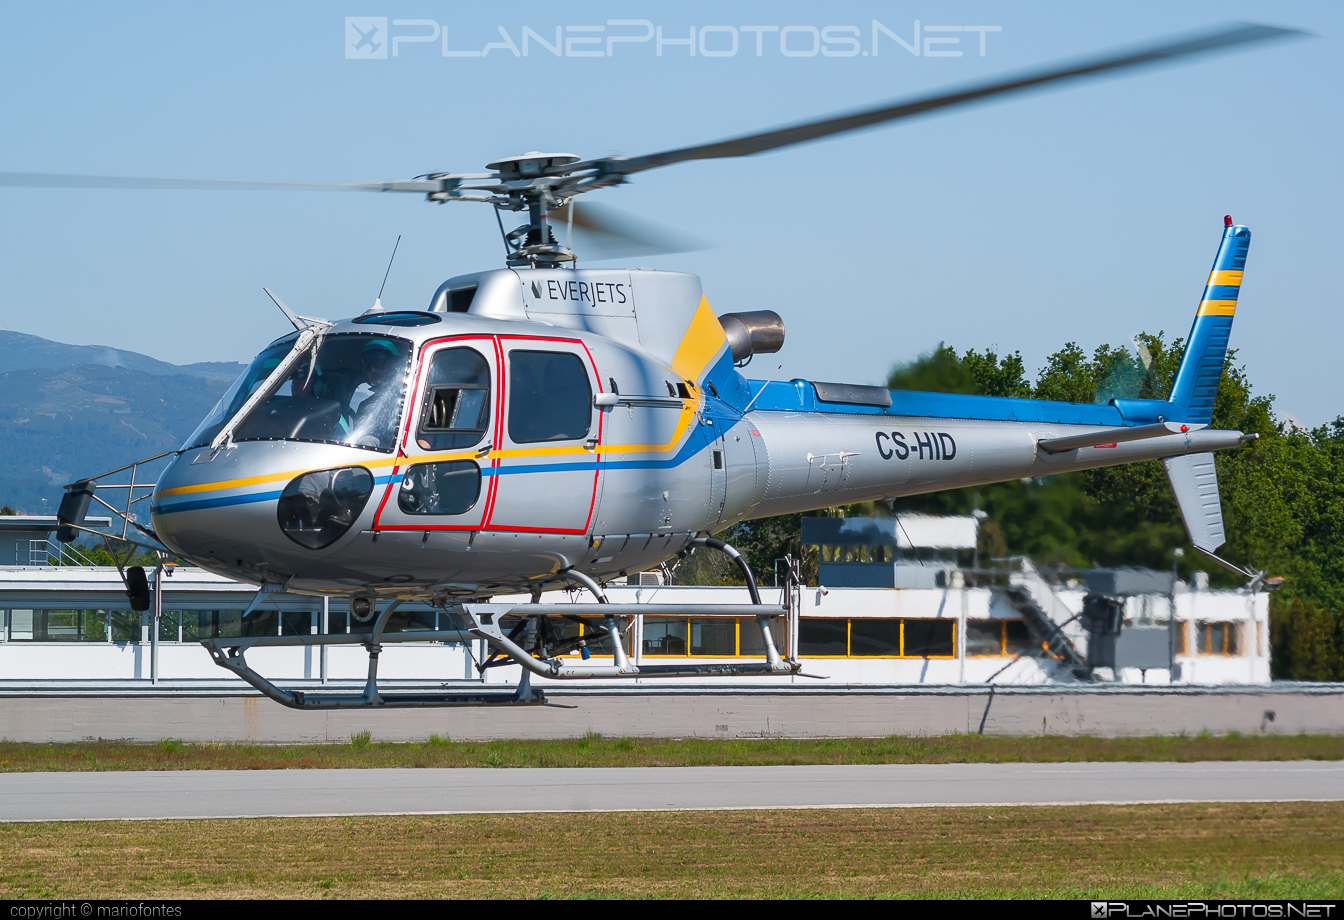 Eurocopter AS350 B3 Ecureuil - CS-HID operated by Everjets - Aviação Executiva, S.A. #eurocopter #everjets